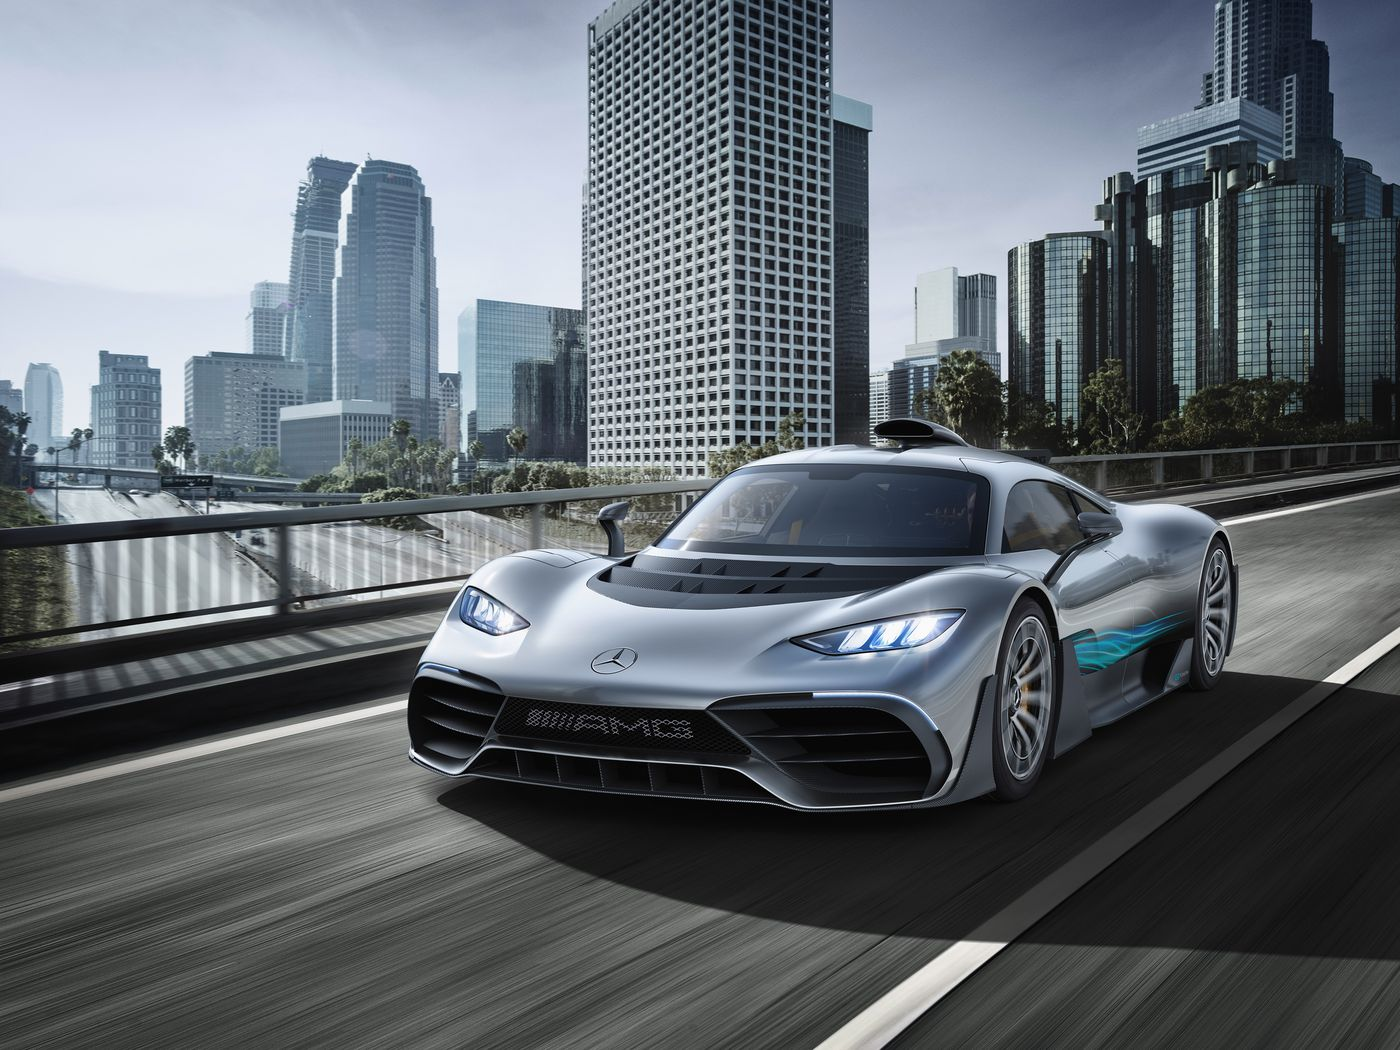 1000-Horsepower Mercedes-AMG Project ONE Hypercar Unveiled